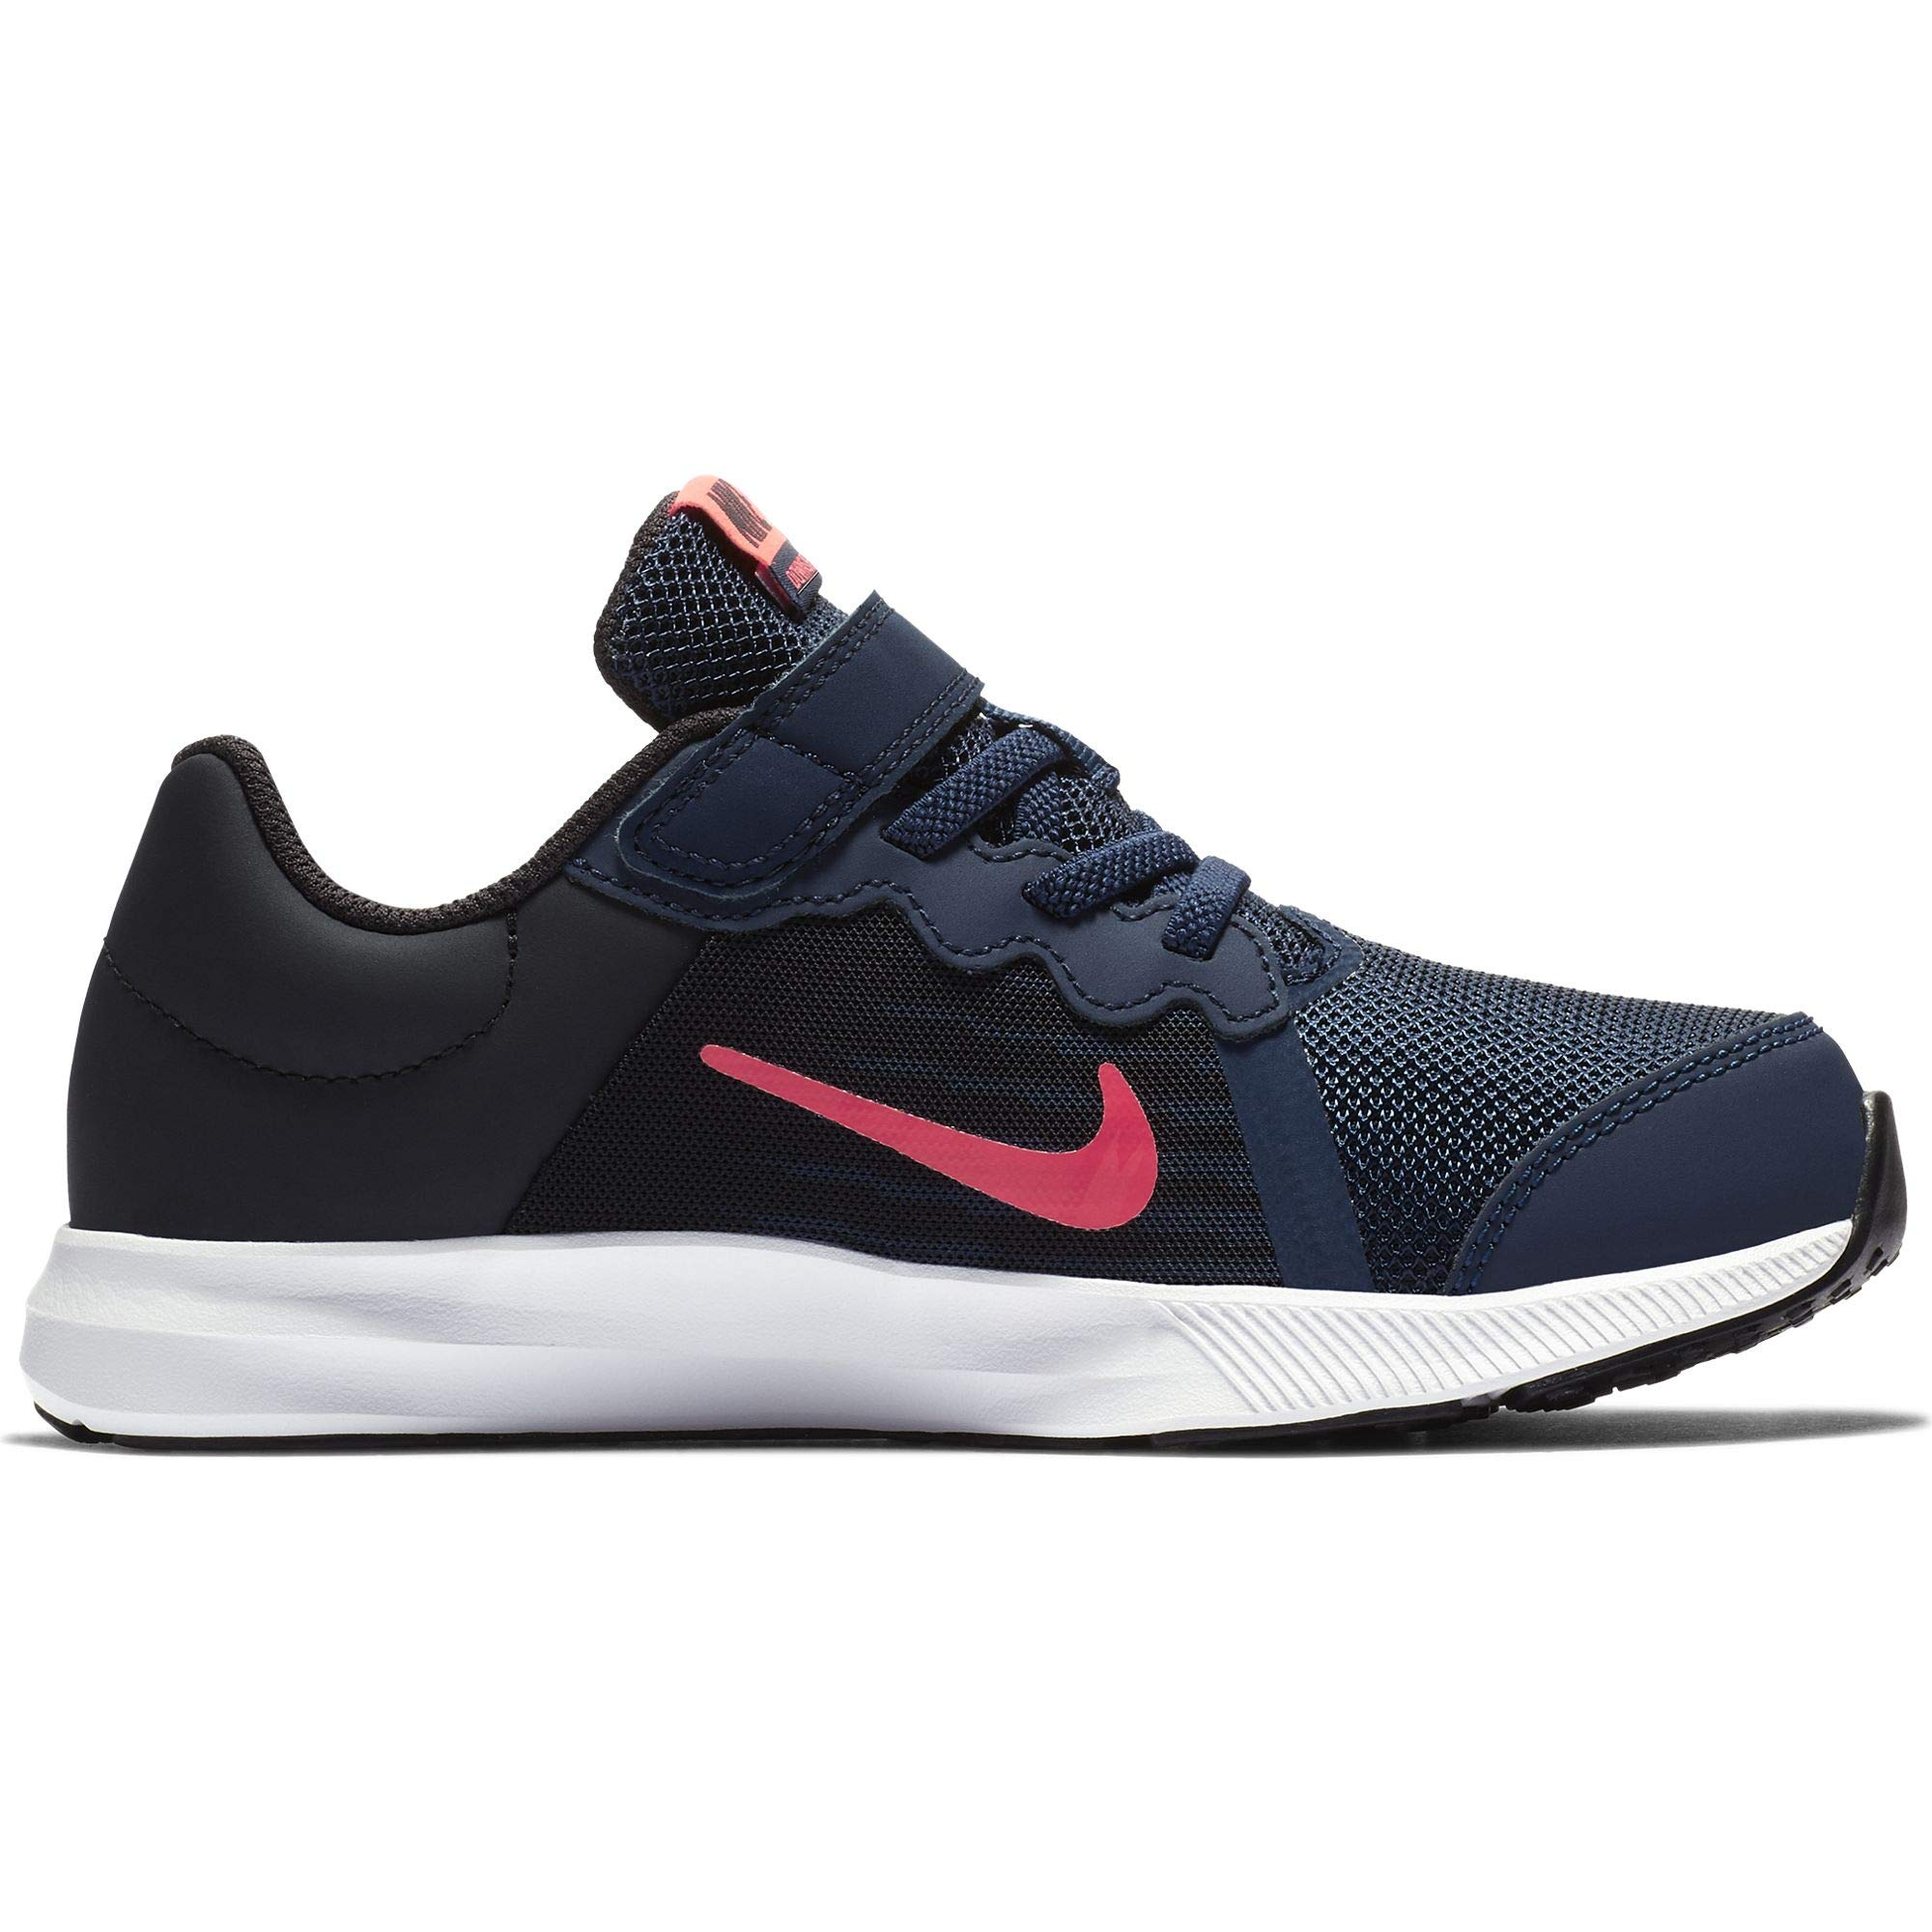 Nike Girl's Downshifter 8 (PS) Pre School Shoe Midnight Navy/Flash Crimson/Oil Grey Size 1 M US